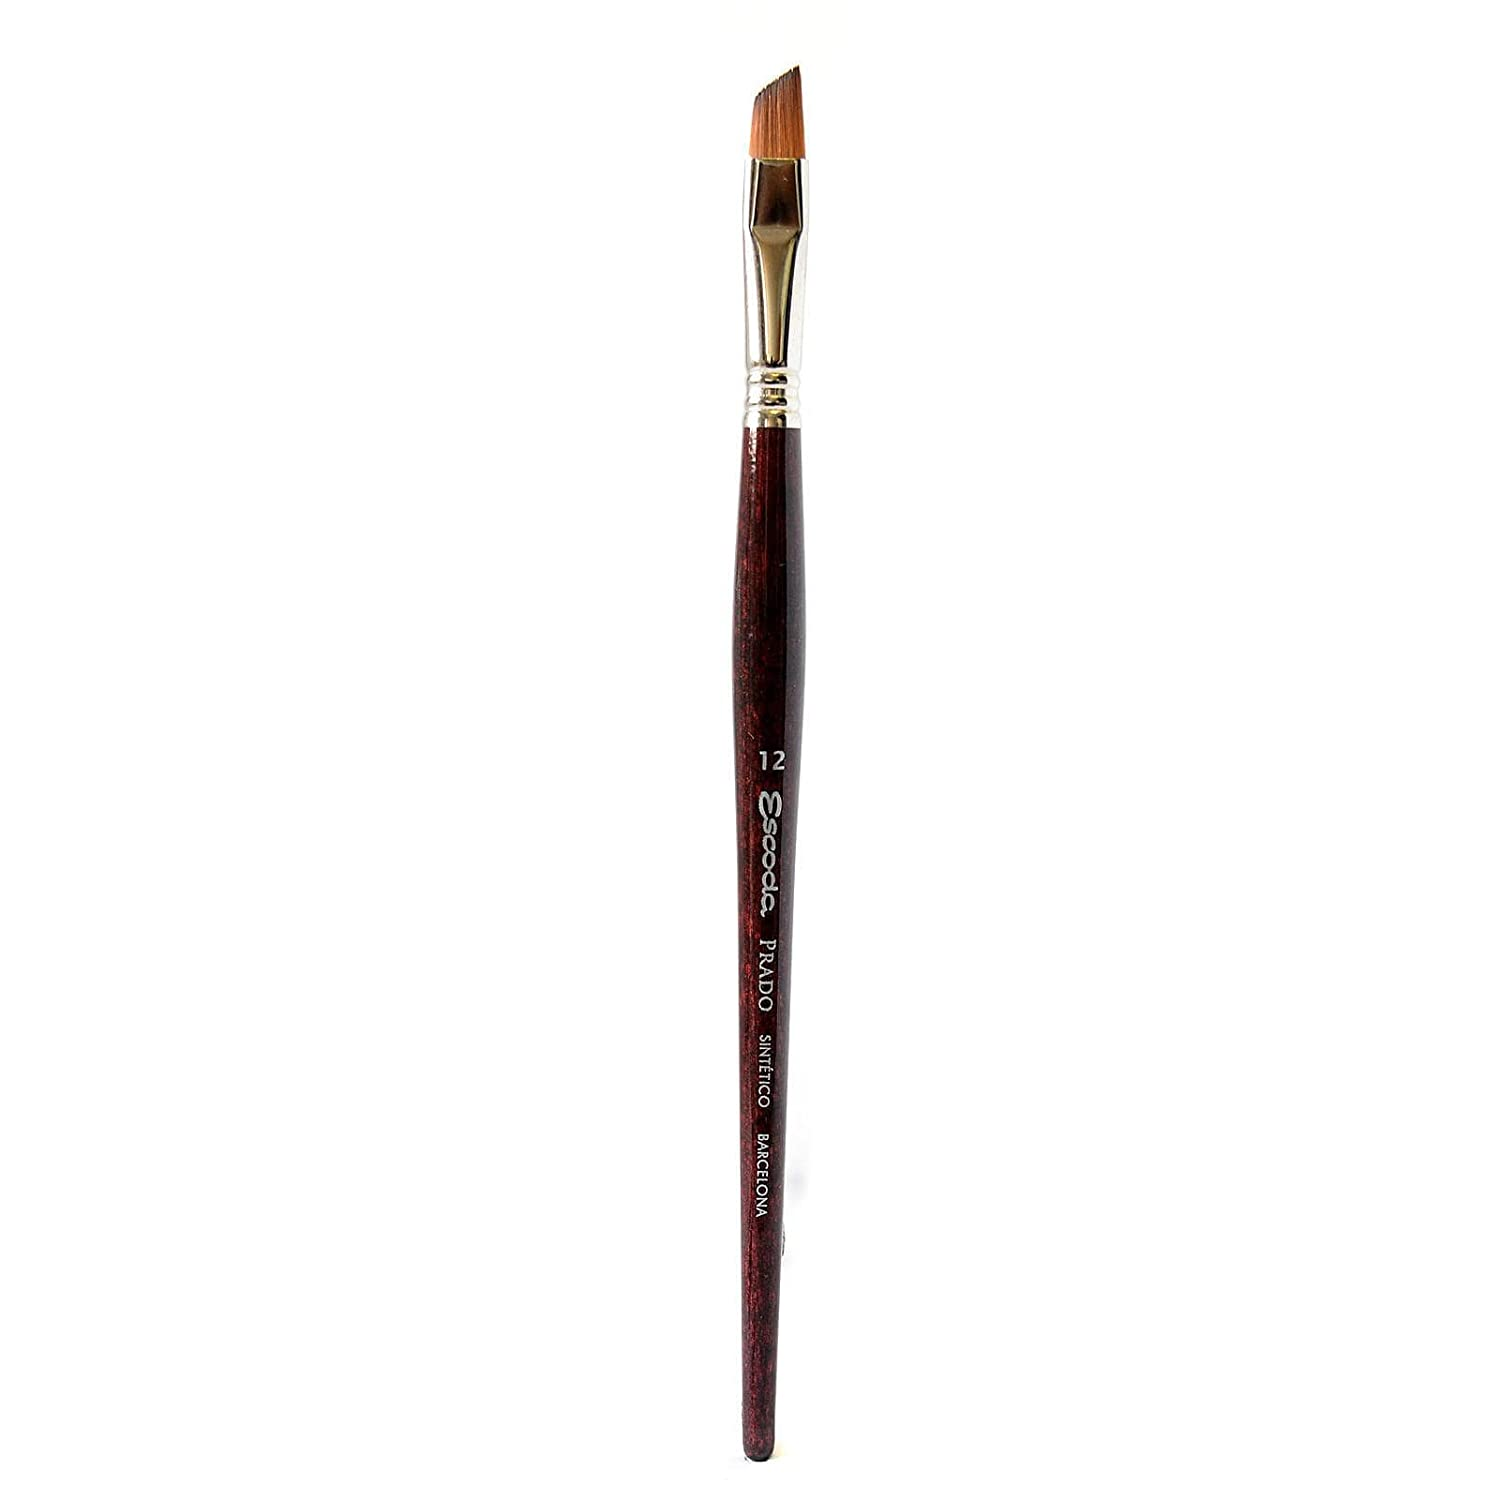 Escoda Prado 1463 Watercolor & Acrylic Tame Synthetic Sable Paint Brush Angled; Size 12 Global Art Materials Inc. ESC-1463-12